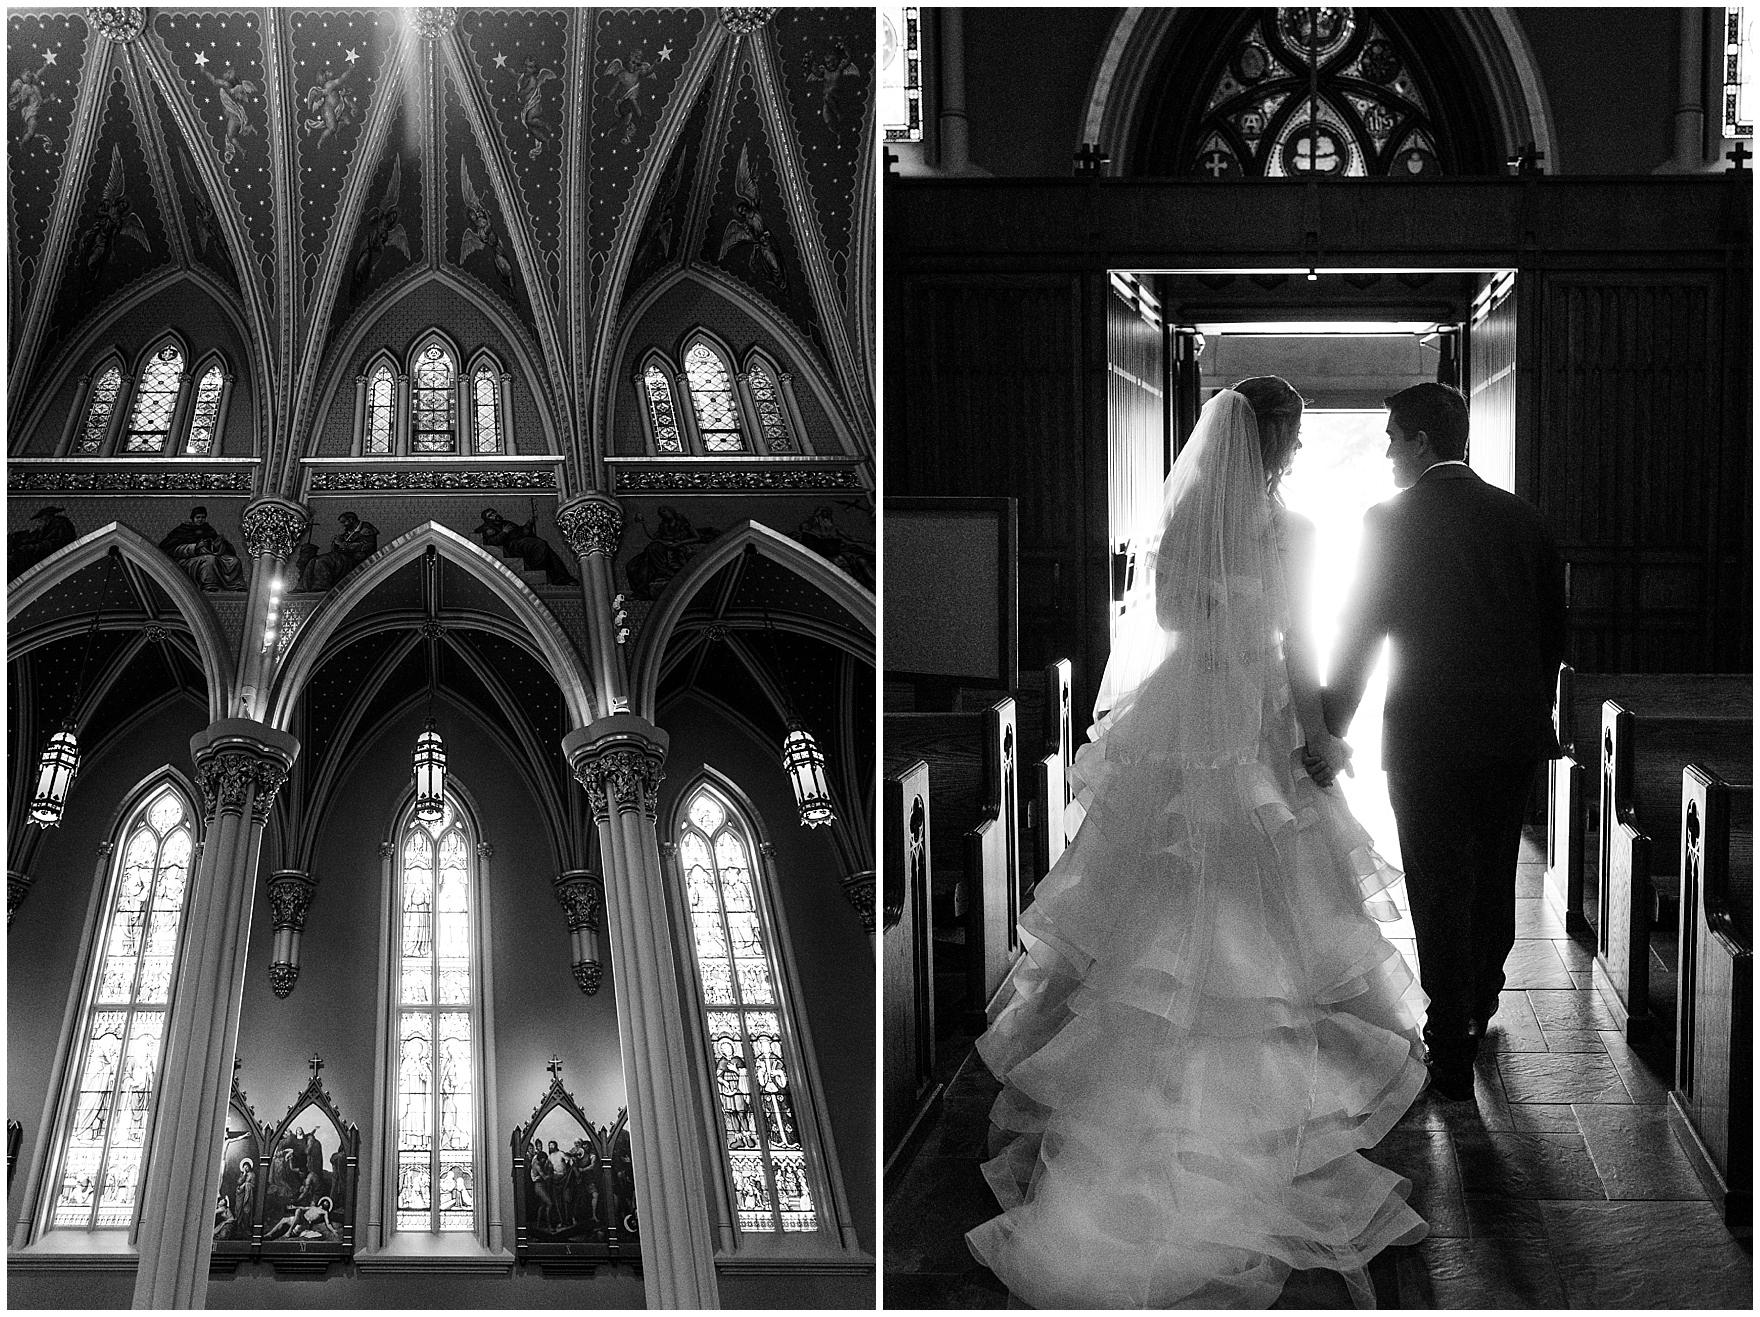 The bride and groom exit the Basilica of the Sacred Heart during a University of Notre Dame wedding.